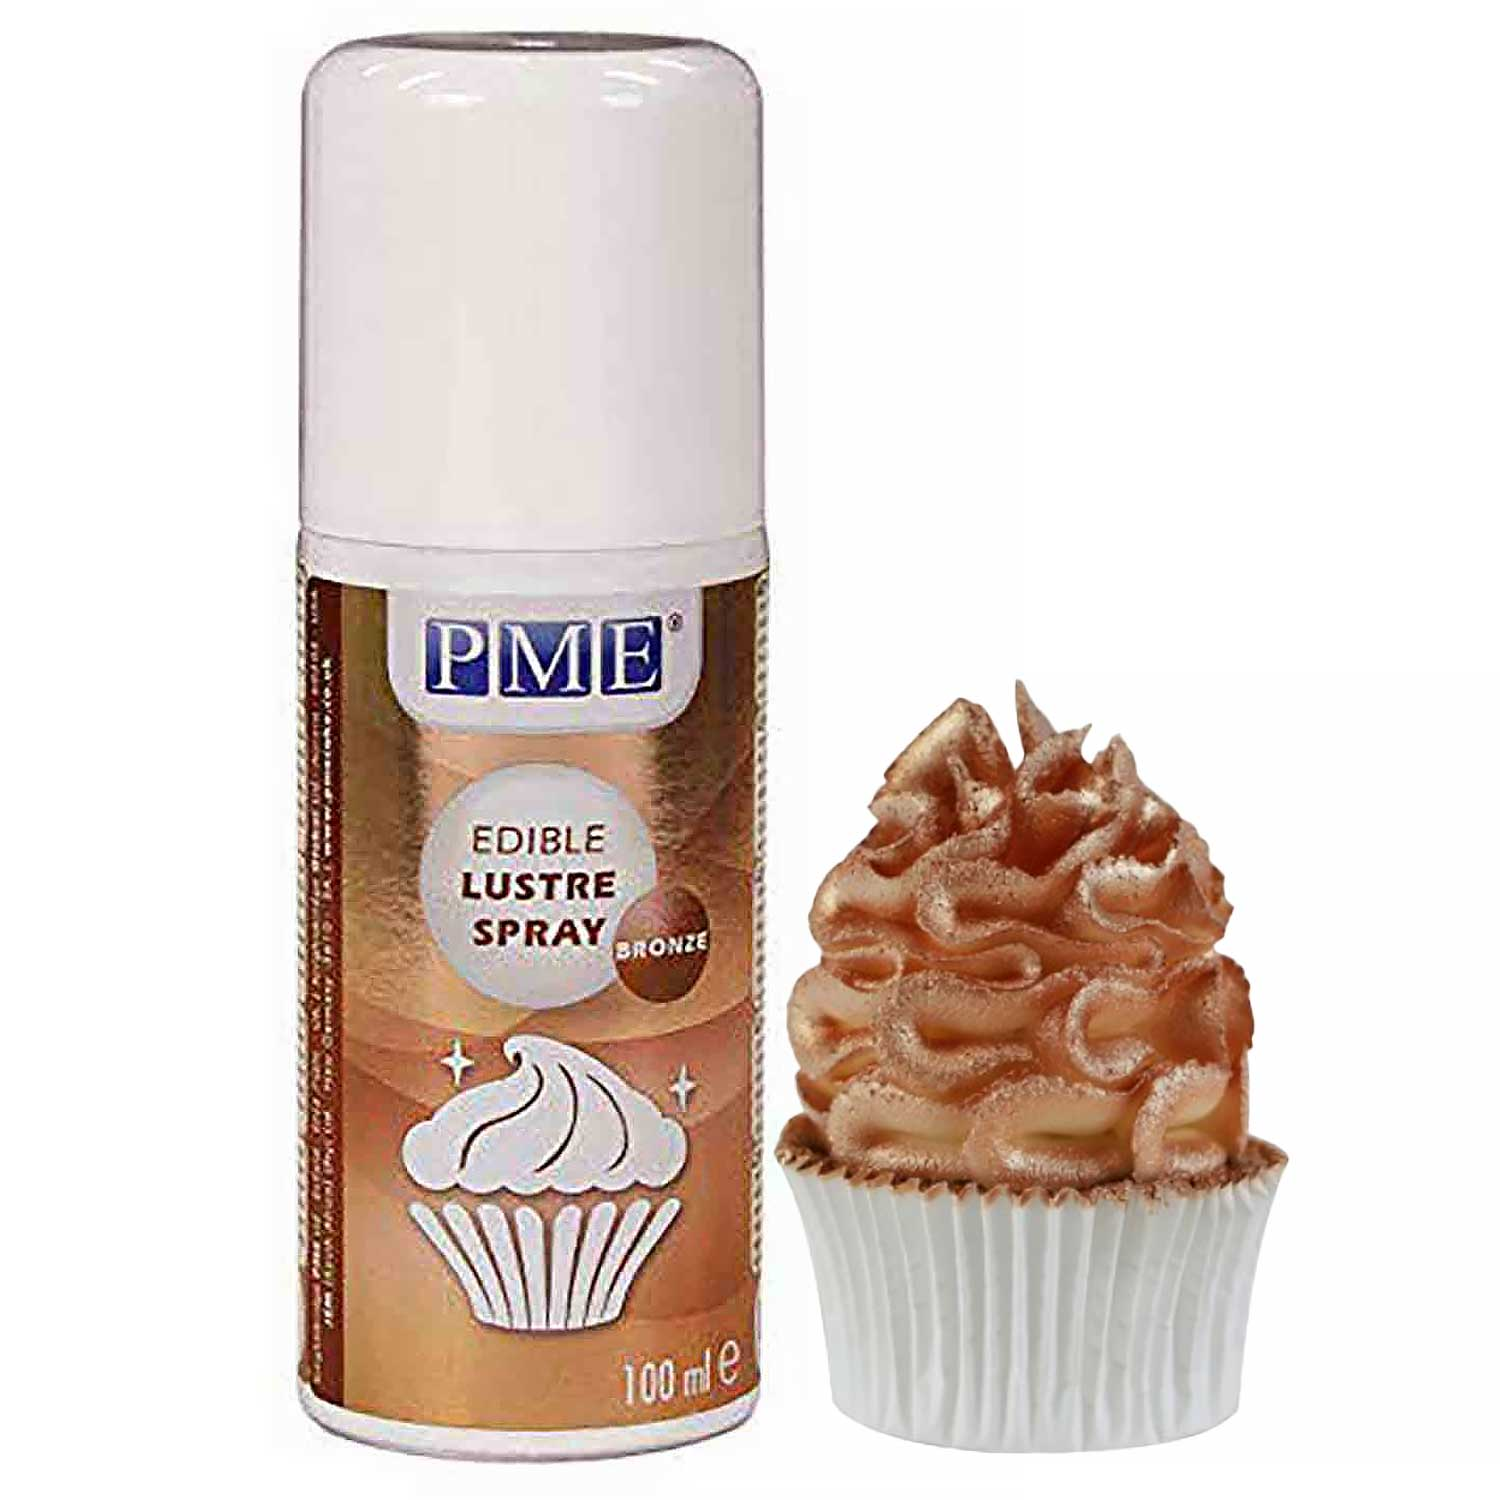 Bronze Edible Lustre Spray